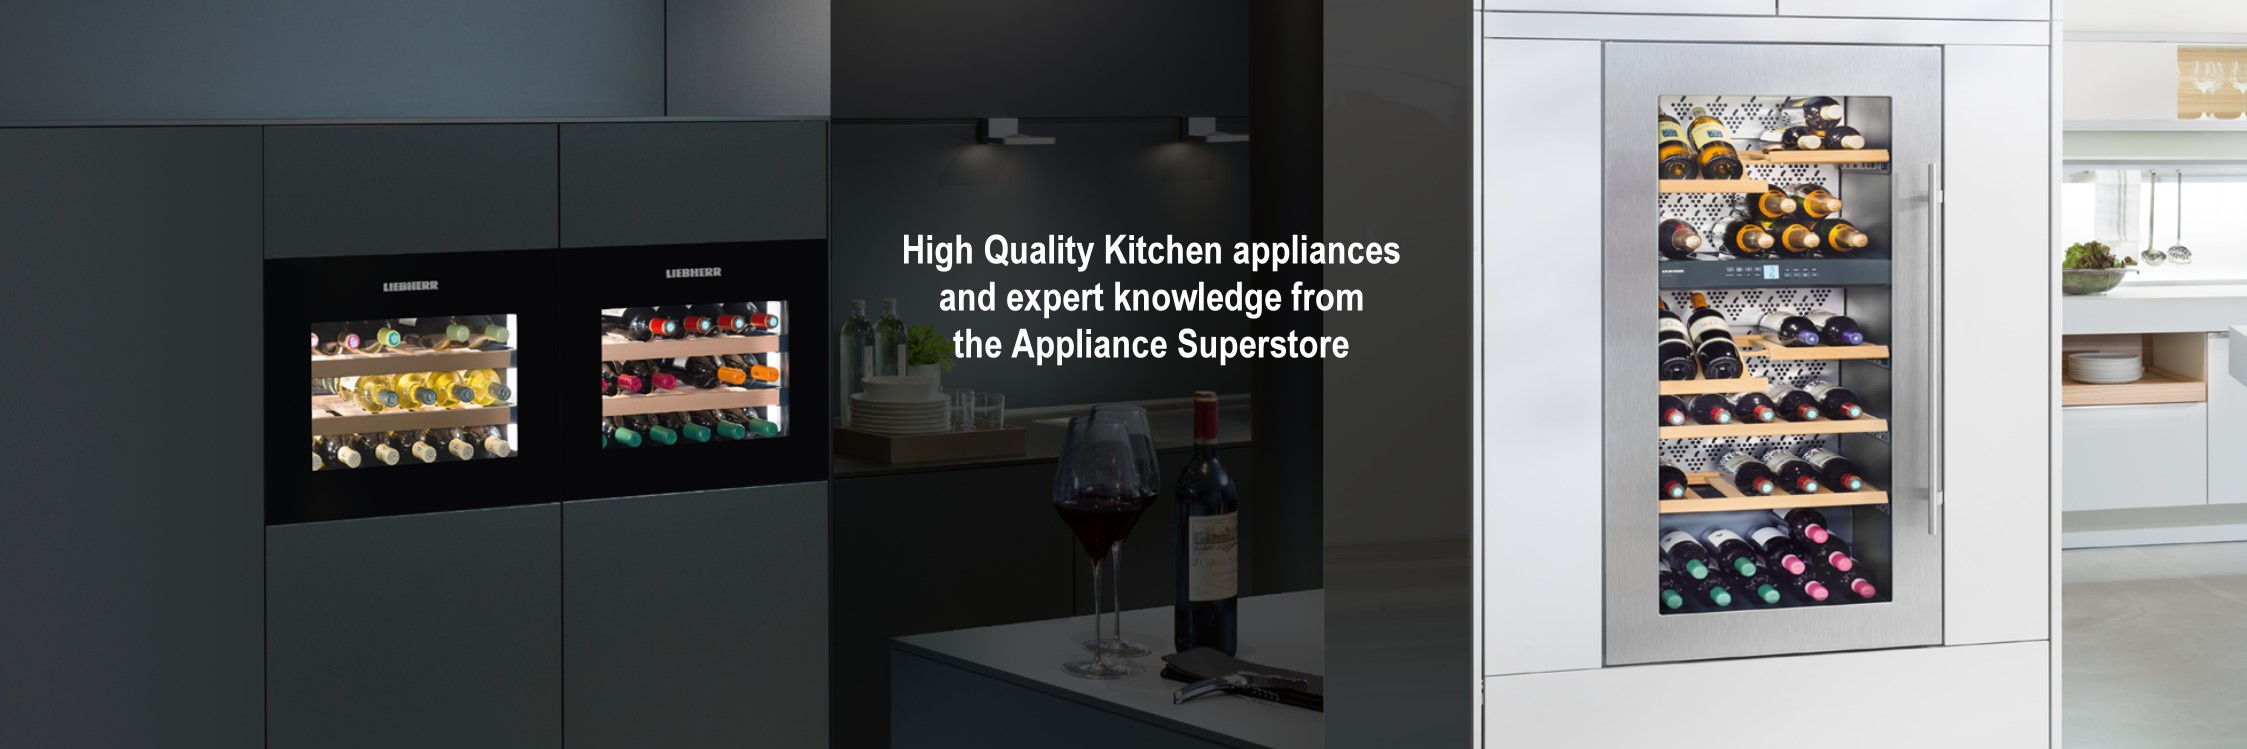 The Appliance Superstore Offers Quality Kitchen And Domestic Appliances At  Competitive Prices.